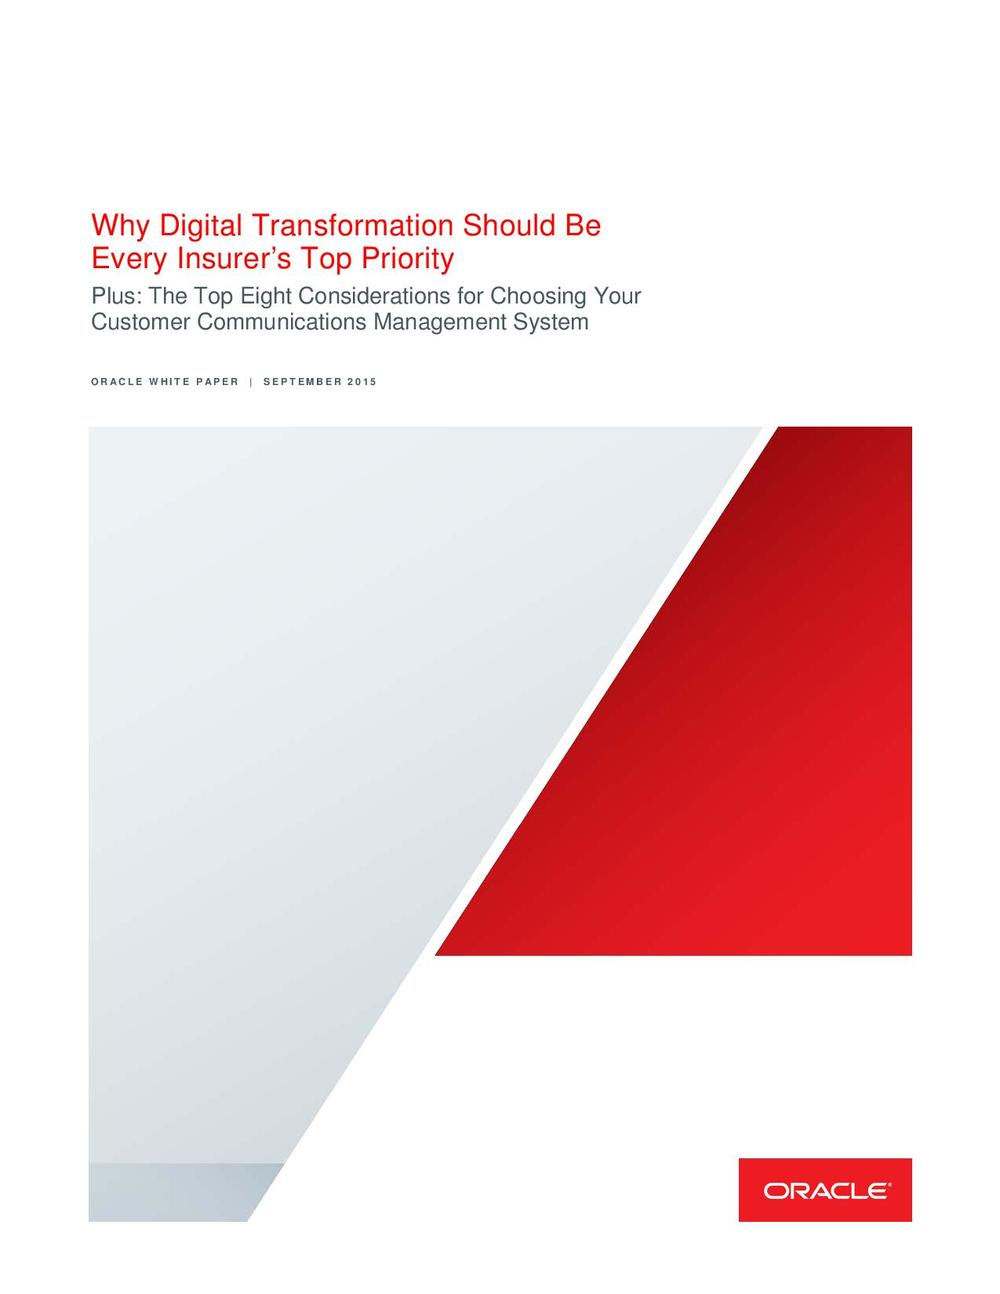 Why Digital Transformation Should Be Every Insurer's Top Priority